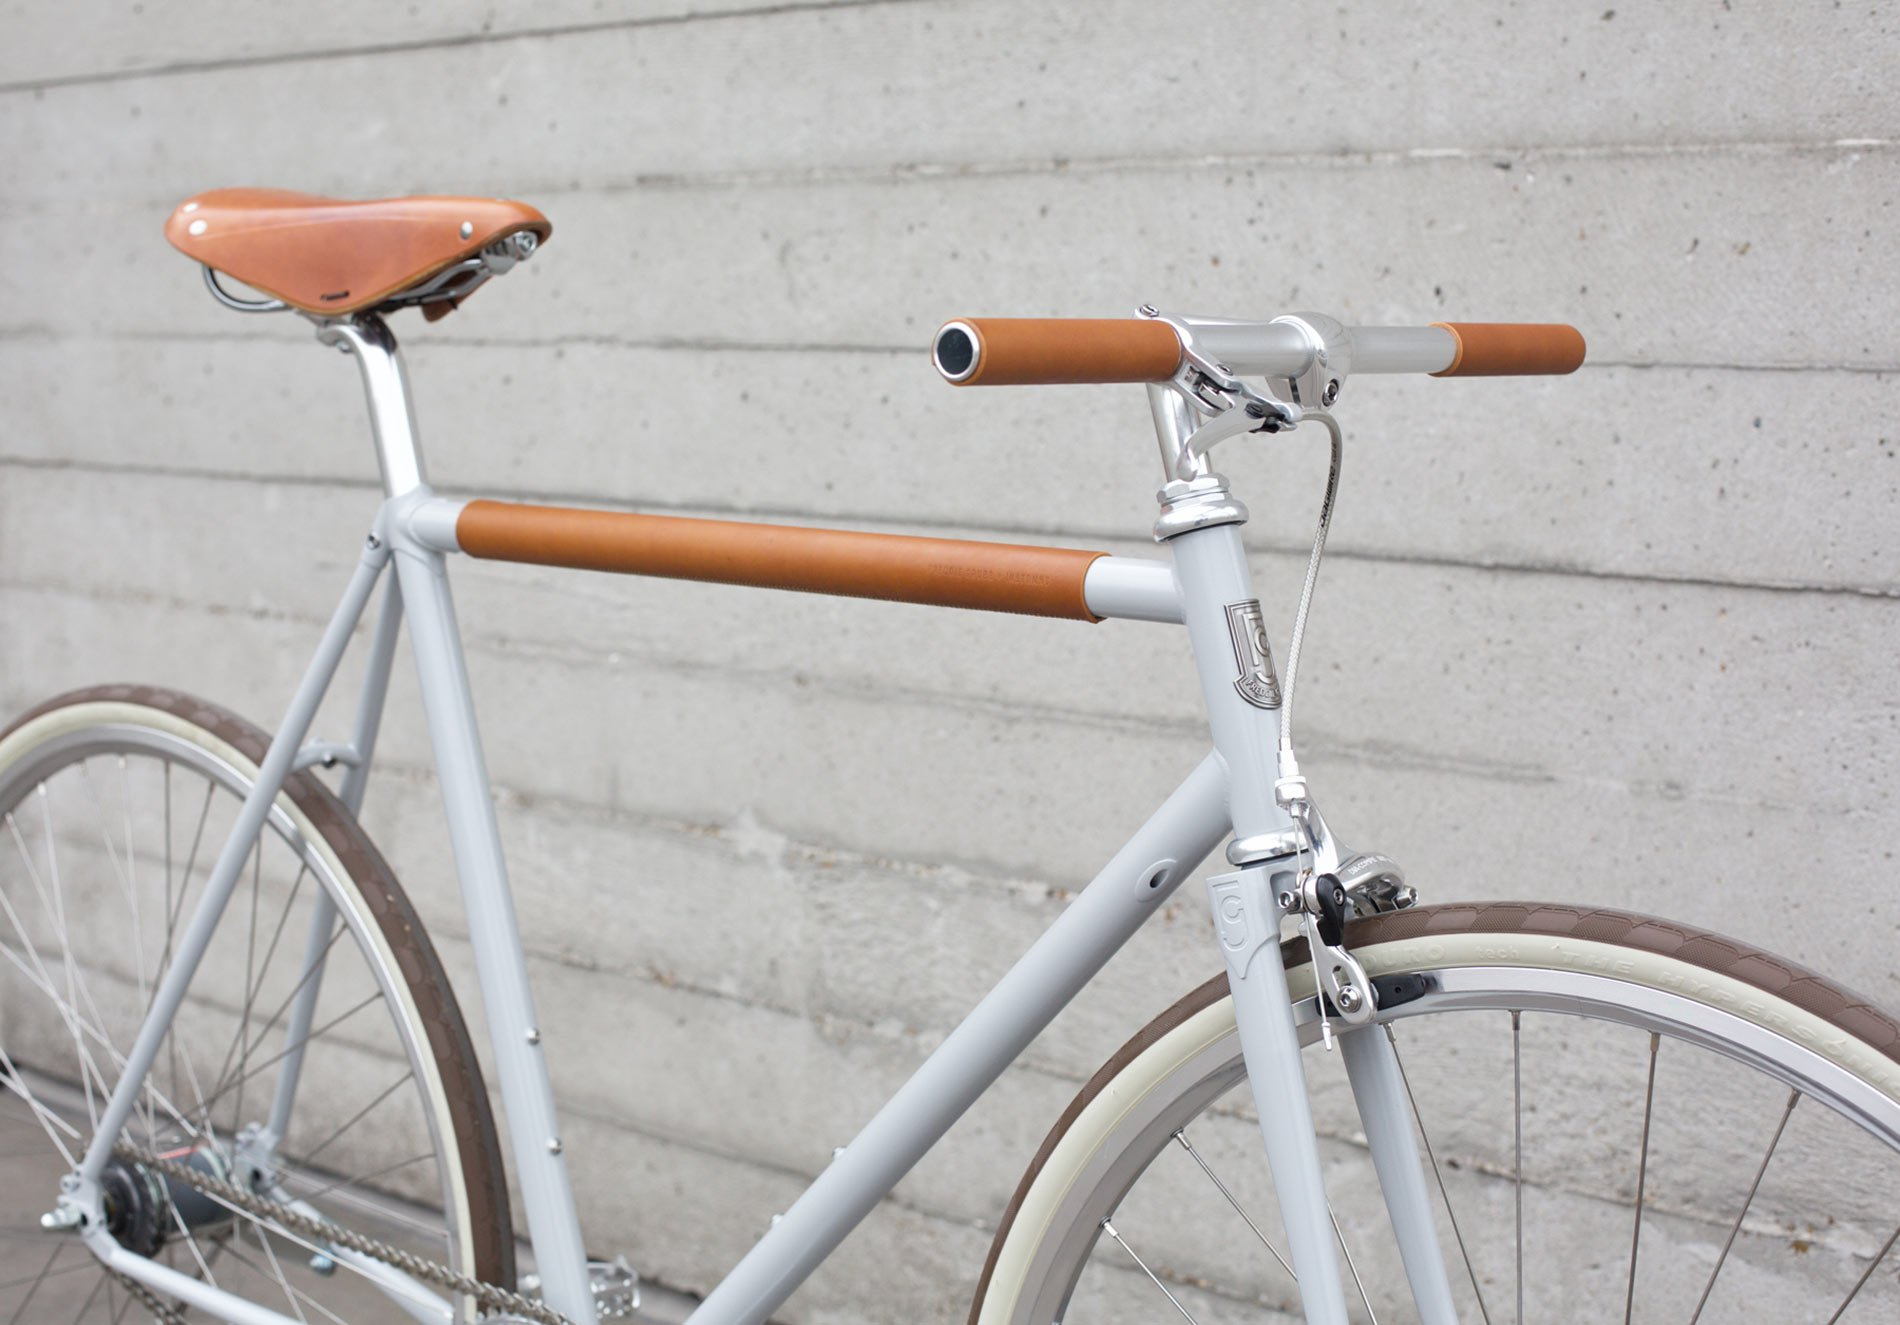 A Minimal 2 Speed City Bike Has More Than Meets The Eye